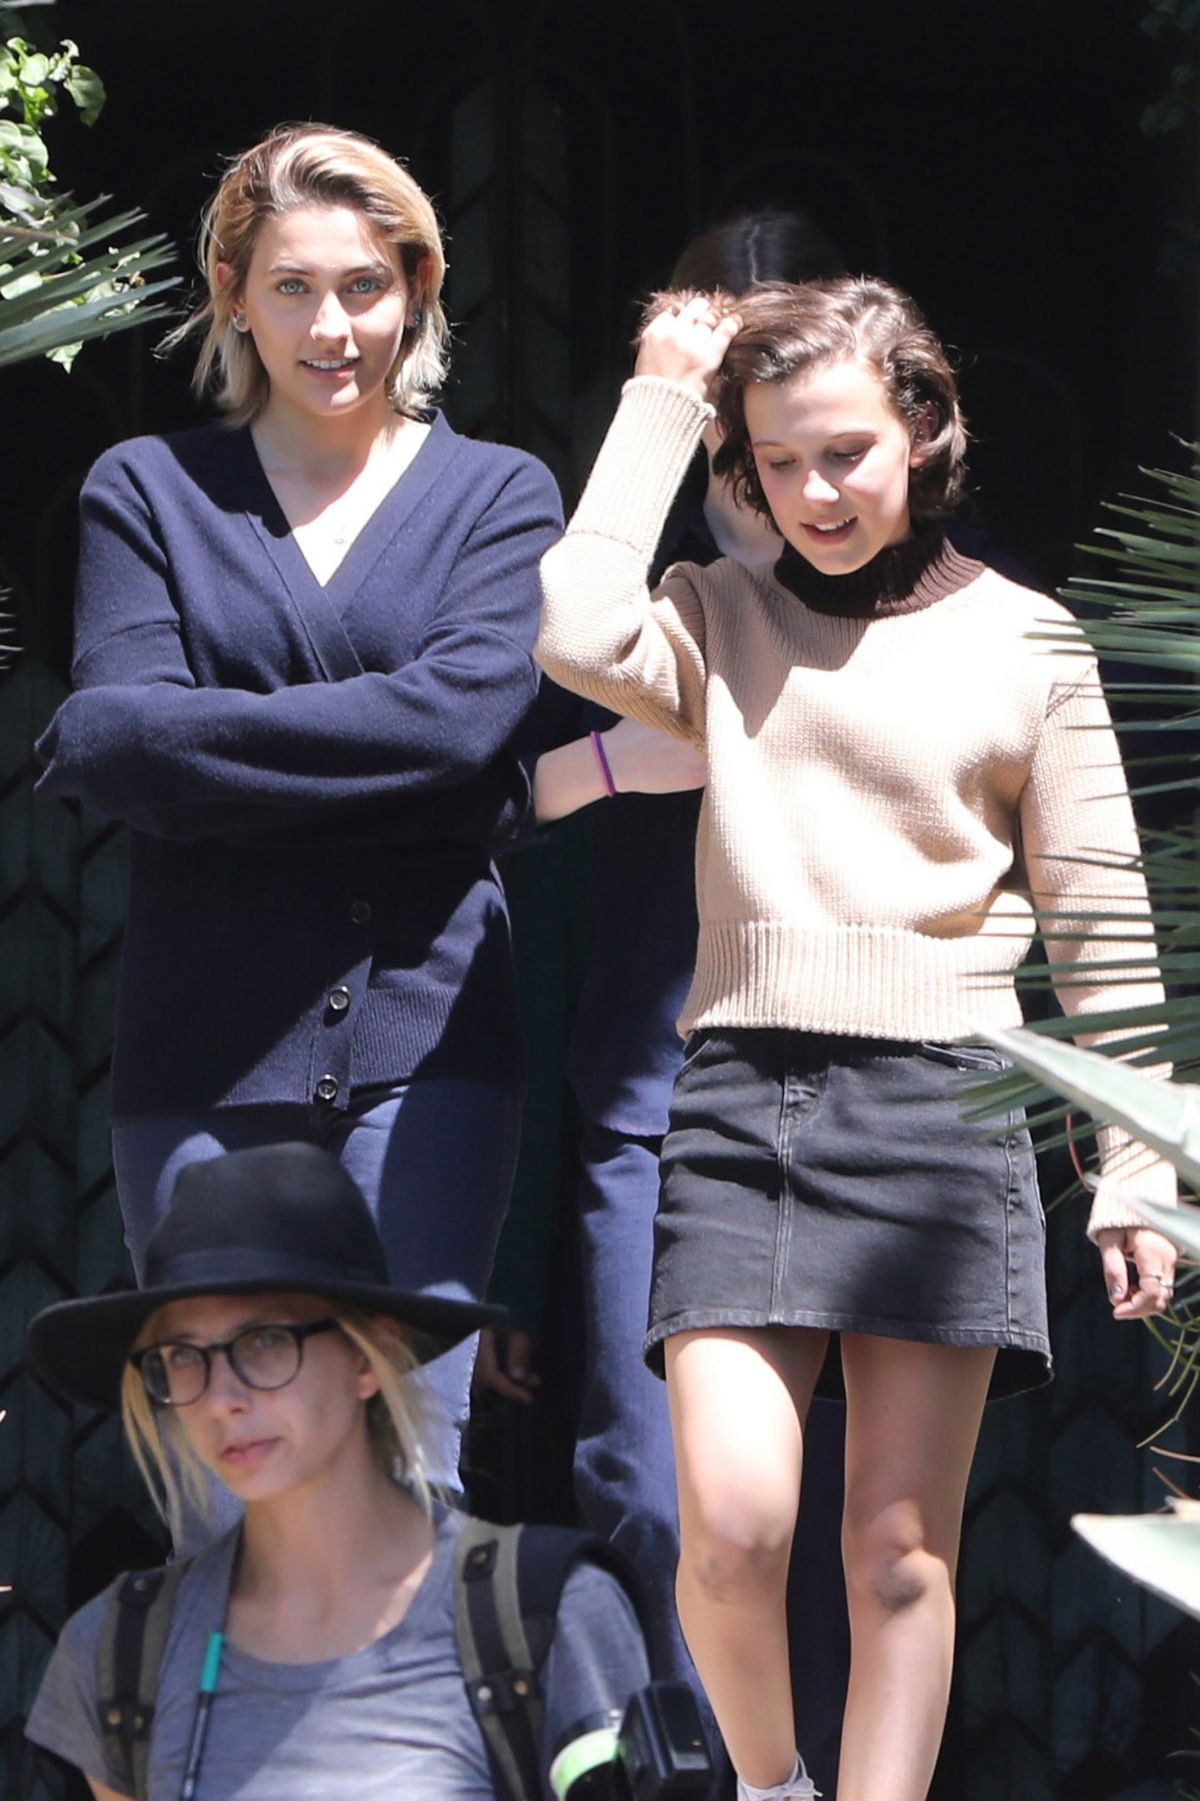 PARIS JACKSON and MILLIE BOBBY BROWN on the Set of Black Dhalia House in Los Angeles 04/20/2017   paris-jackson-and-millie-bobby-brown-on-the-set-of-black-dhalia-house-in-los-angeles-04-20-2017_10